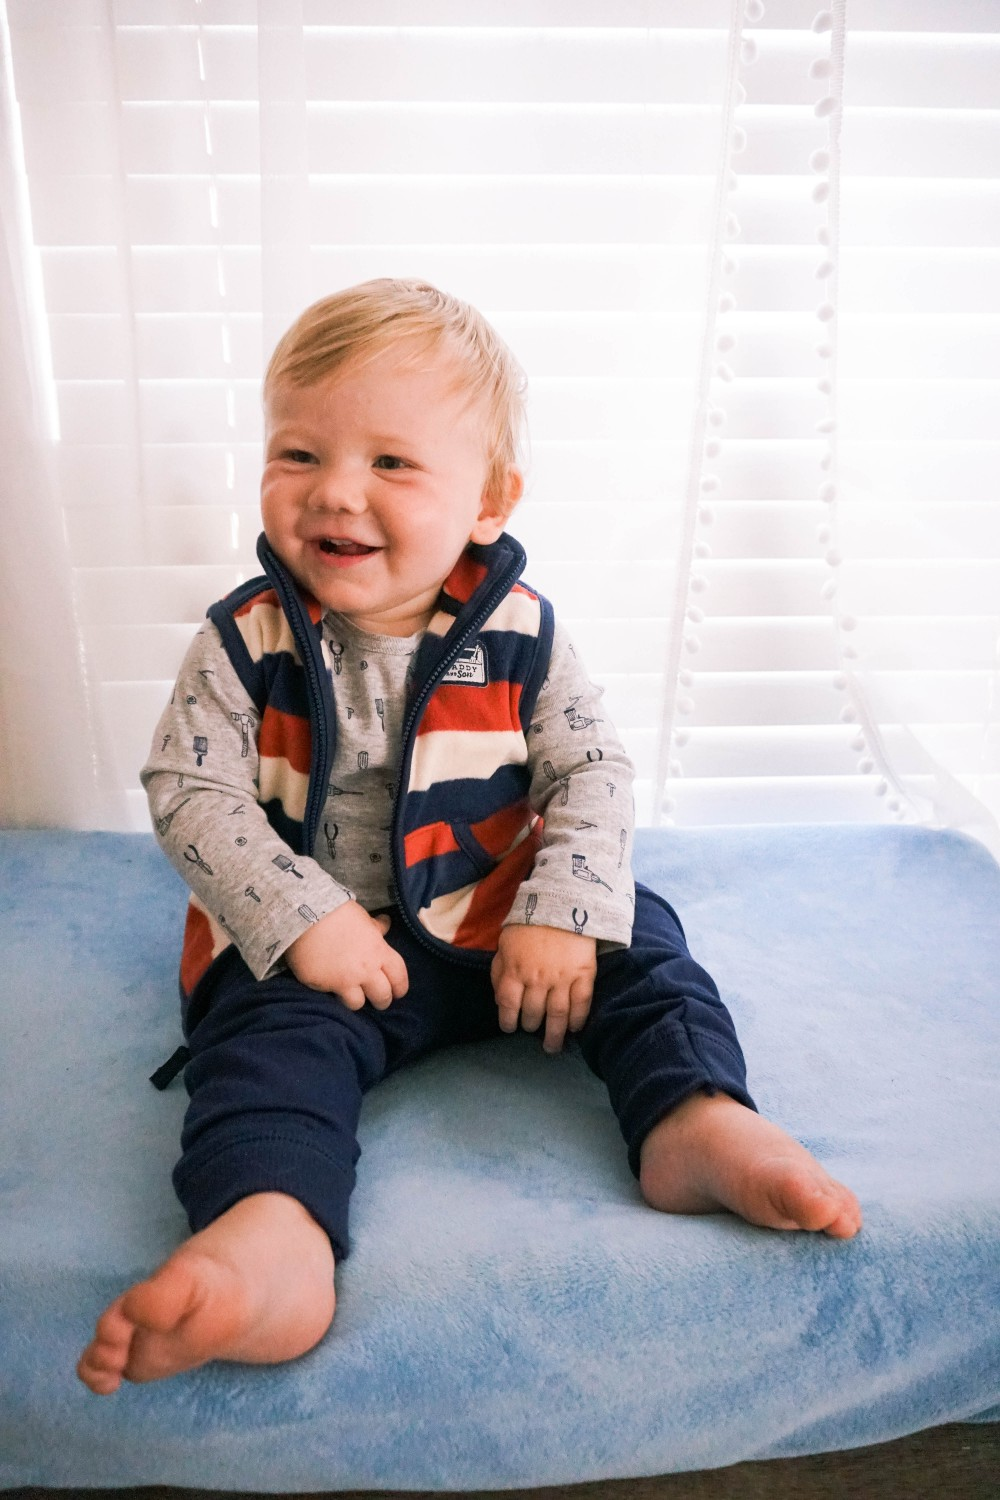 Carter's Baby-JCPenney-Baby Boy Clothes Under $30-Fall Fashion for Baby-Baby Clothing Sale-Have Need Want 5